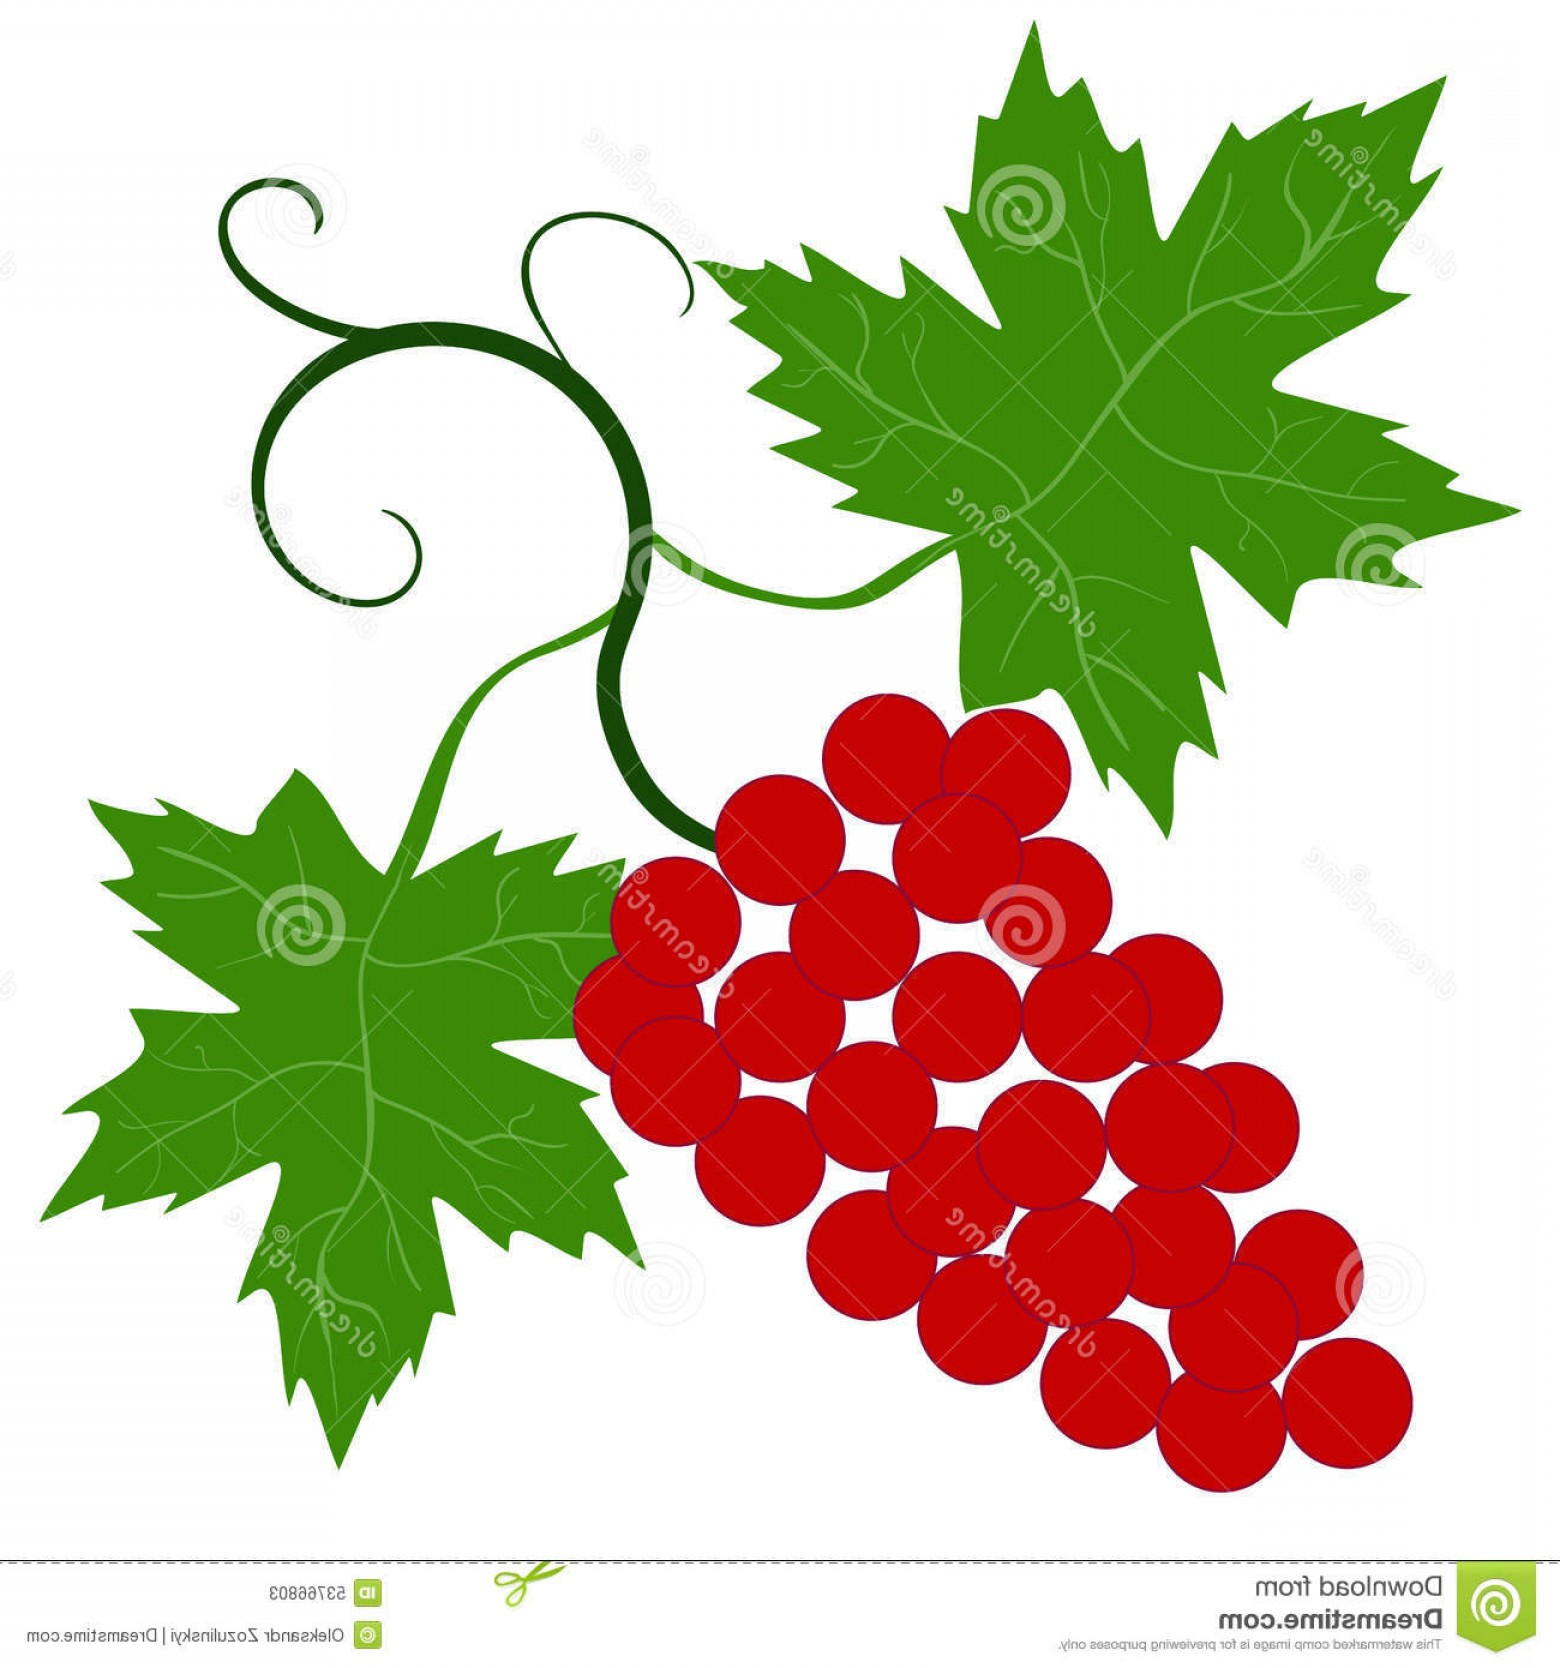 Vector Vine Tree: Stock Illustration Decorative Grapes Vine Vector Ornament Image